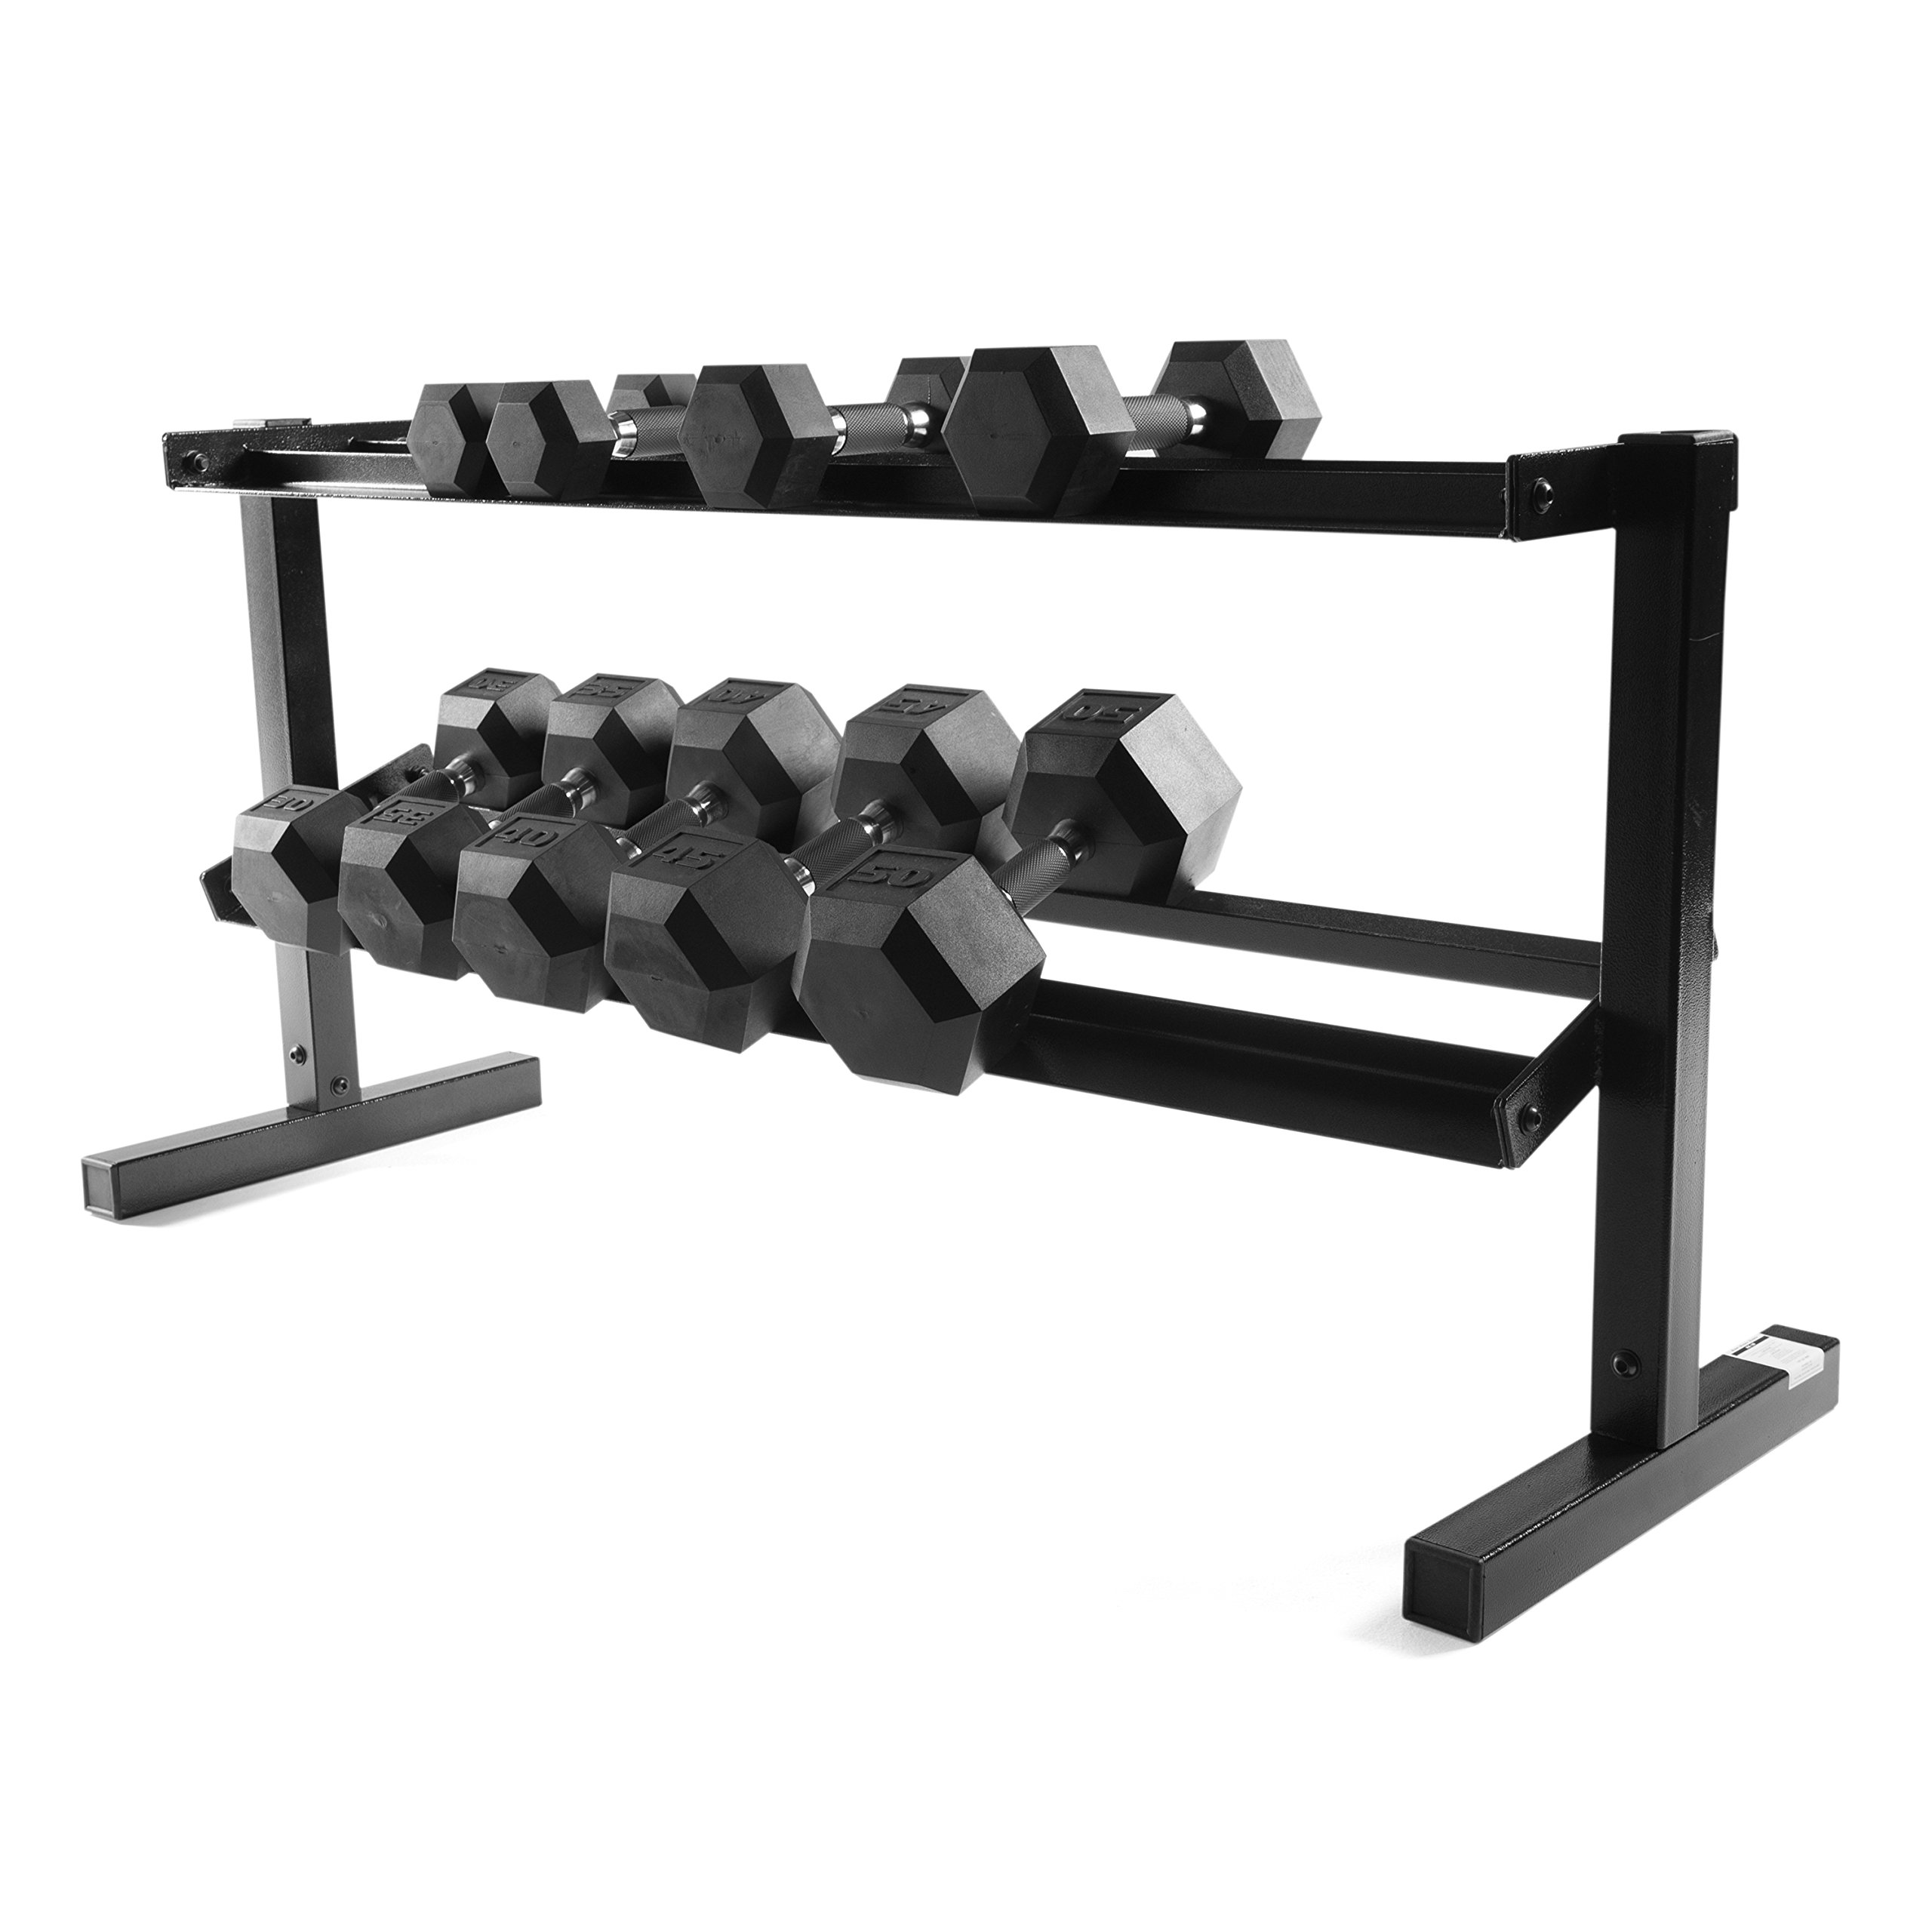 CAP Barbell 2-tier, 50'' Dumbbell Storage Rack / Dumbbell Rack / Dumbbell Rack Stand / Rack Only by CAP Barbell